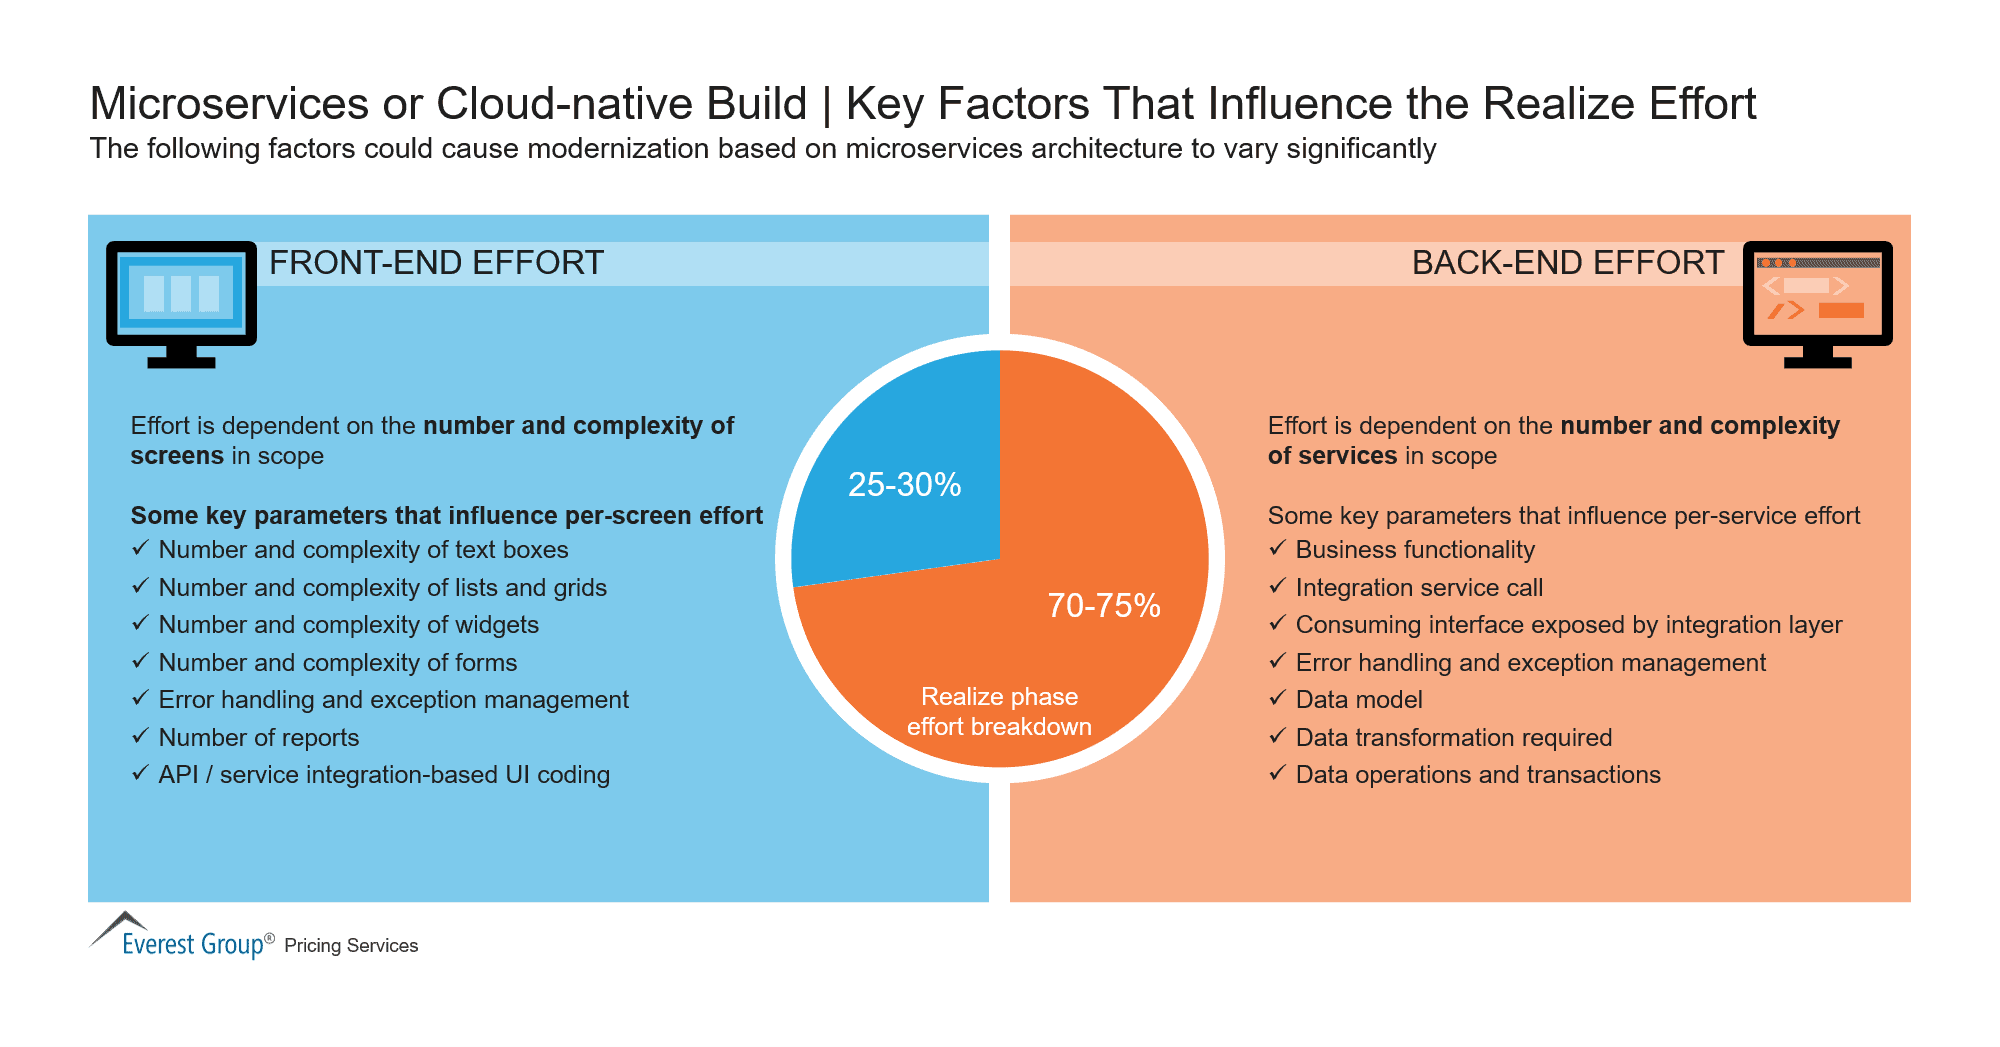 Microservices or Cloud-native Build - Key Factors That Influence the Realize Effort